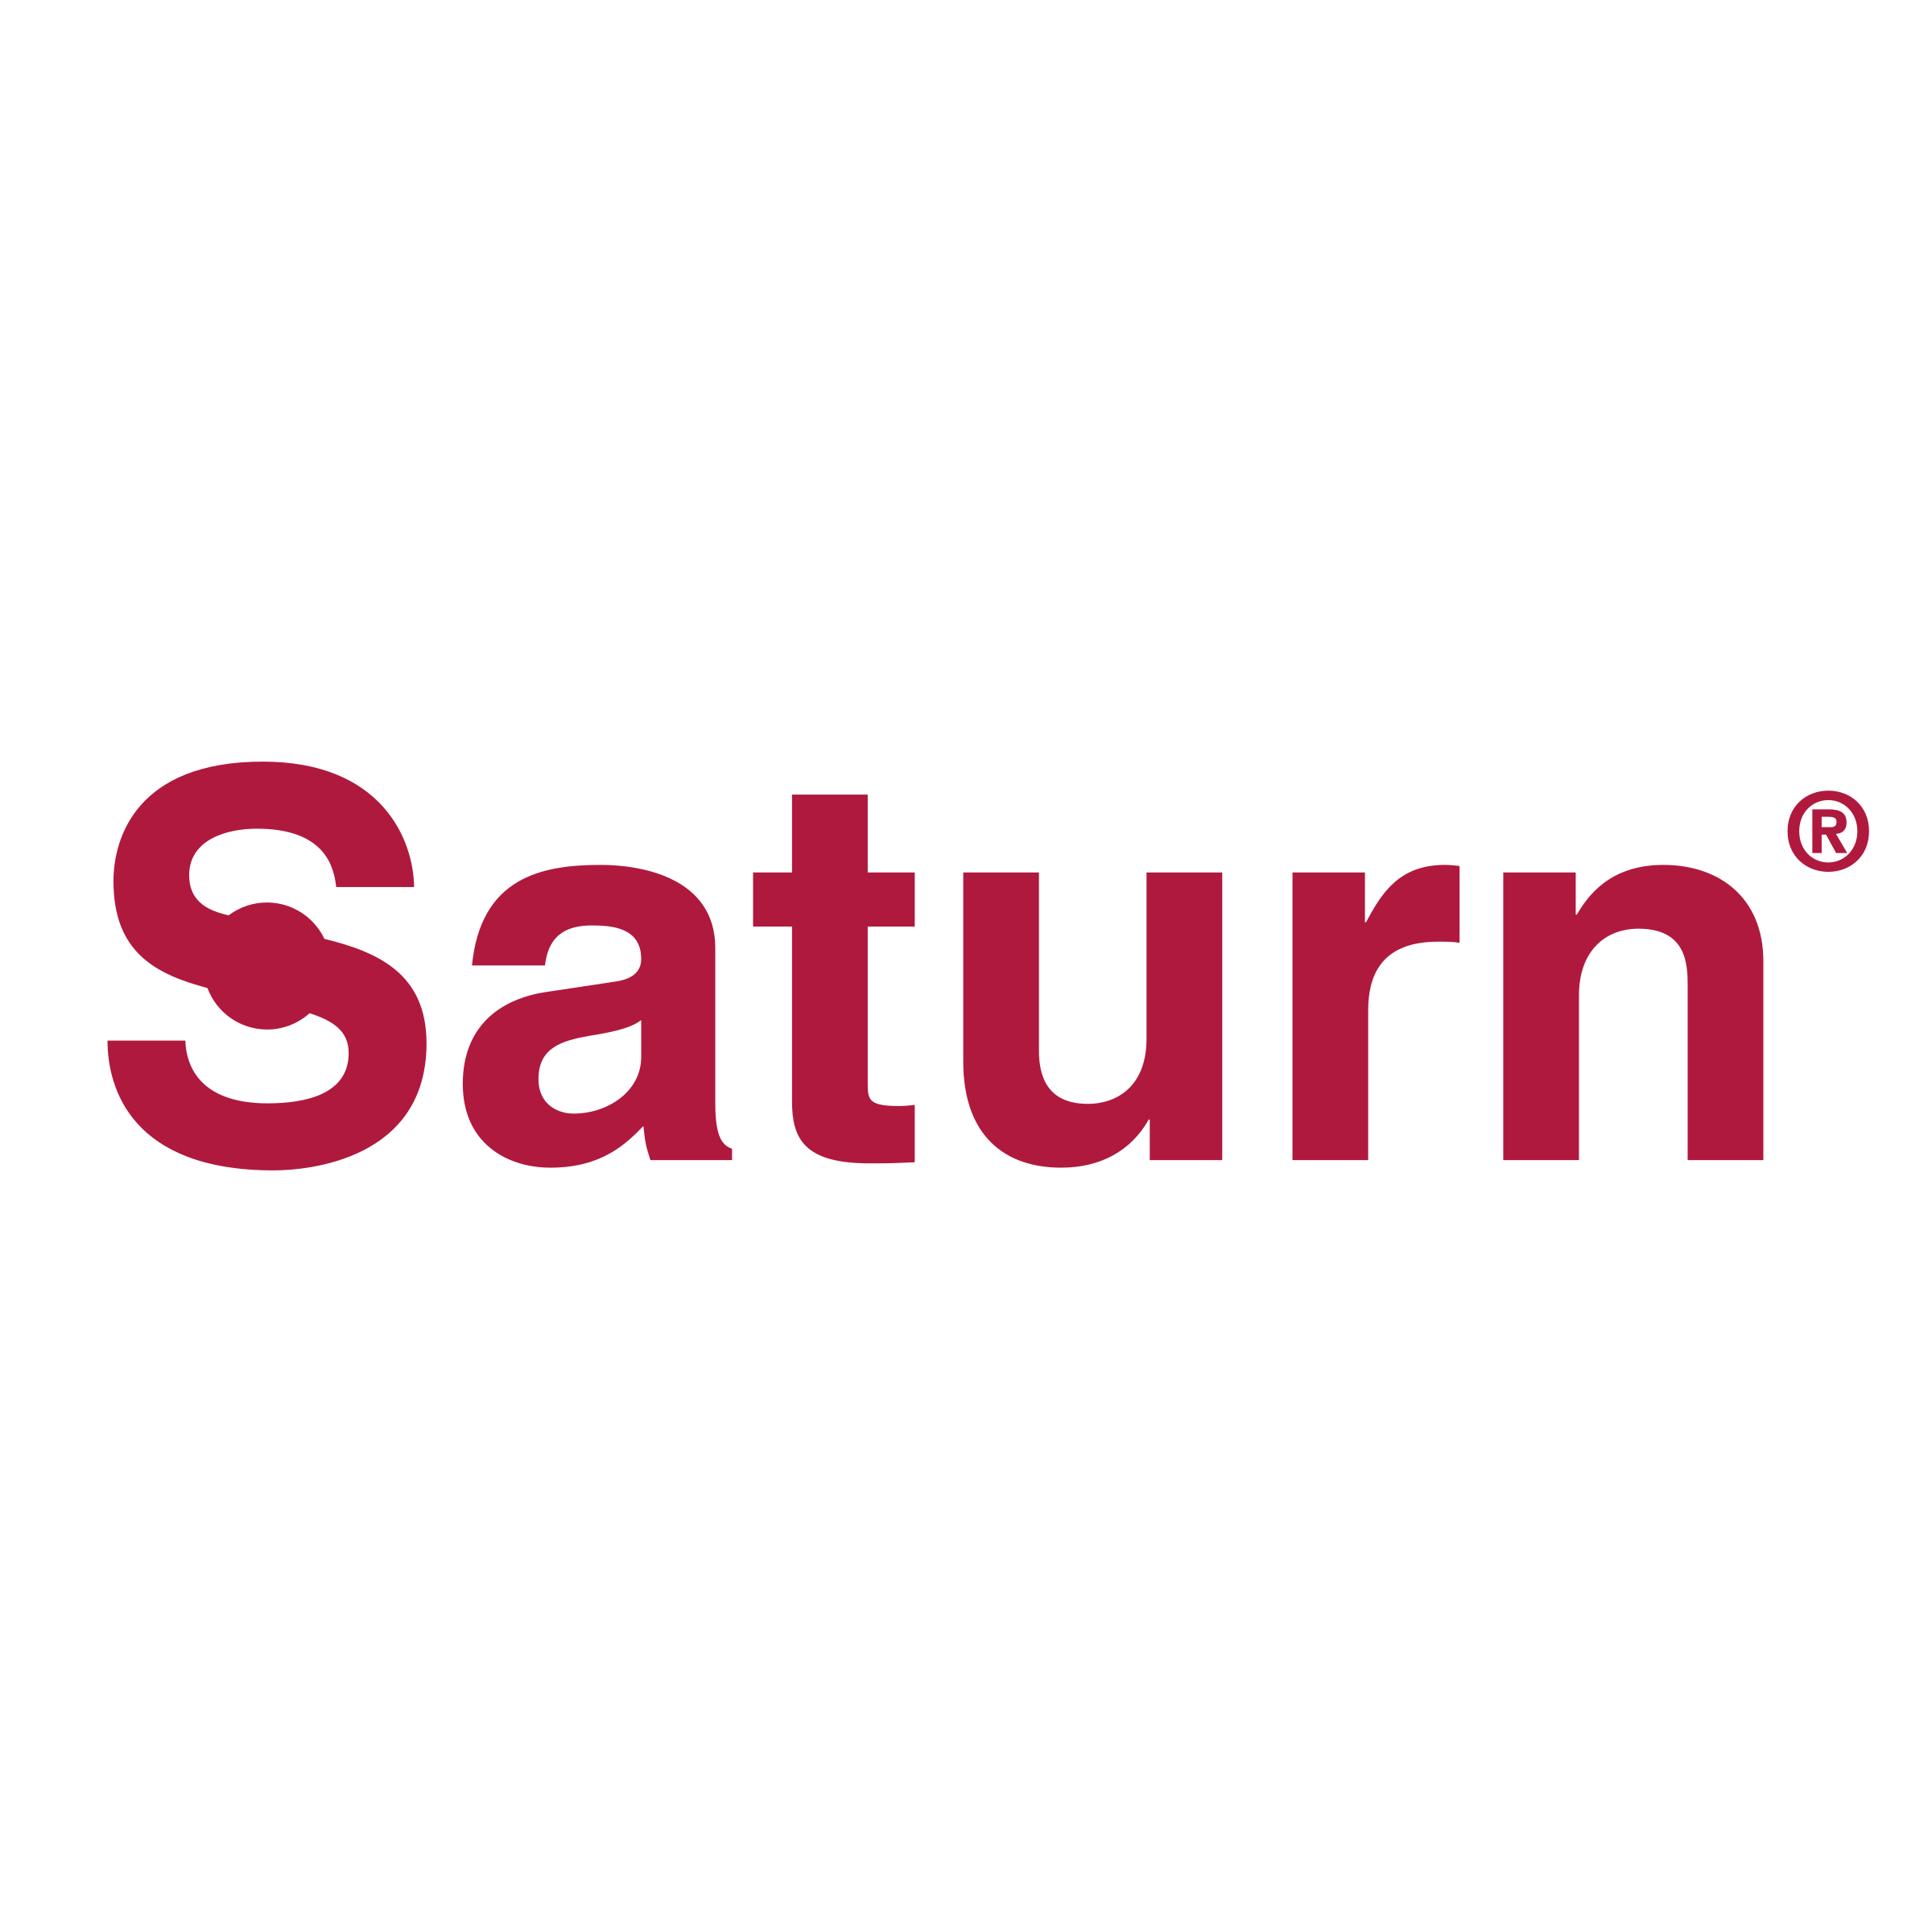 Saturn Logo - Saturn Logo PNG Transparent & SVG Vector - Freebie Supply